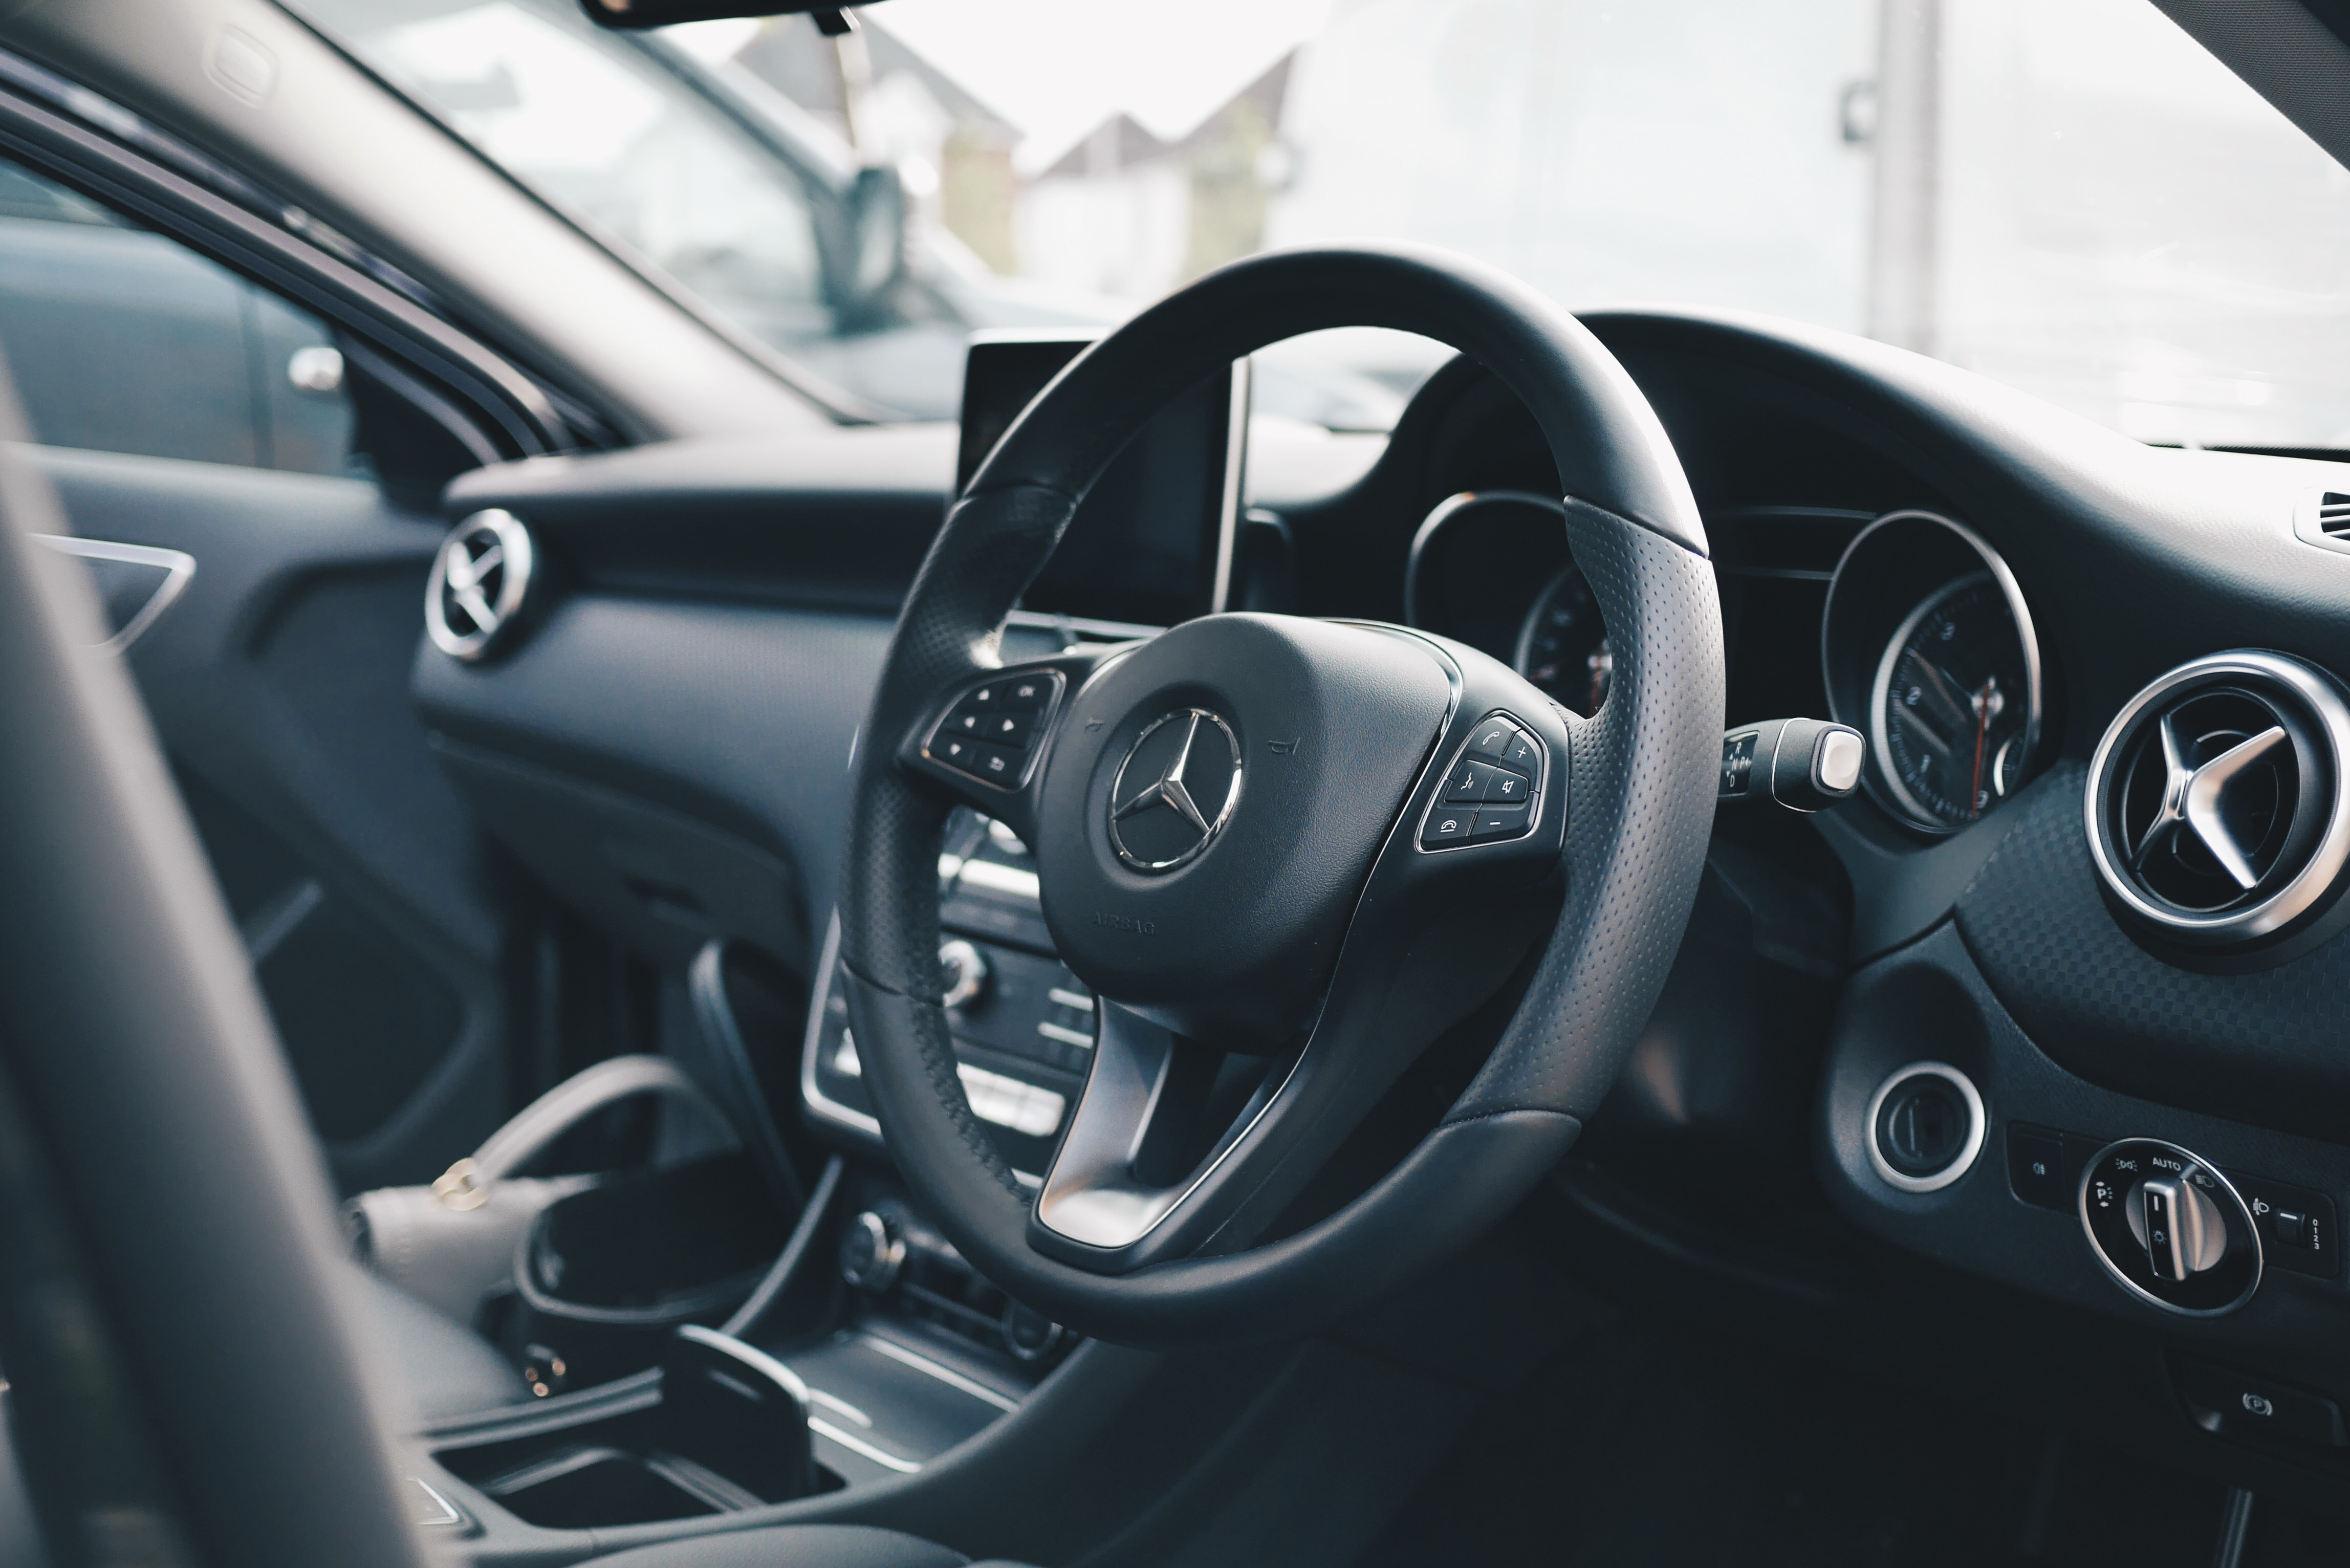 Interior of a Mercedes Benz car centered on the steering wheel